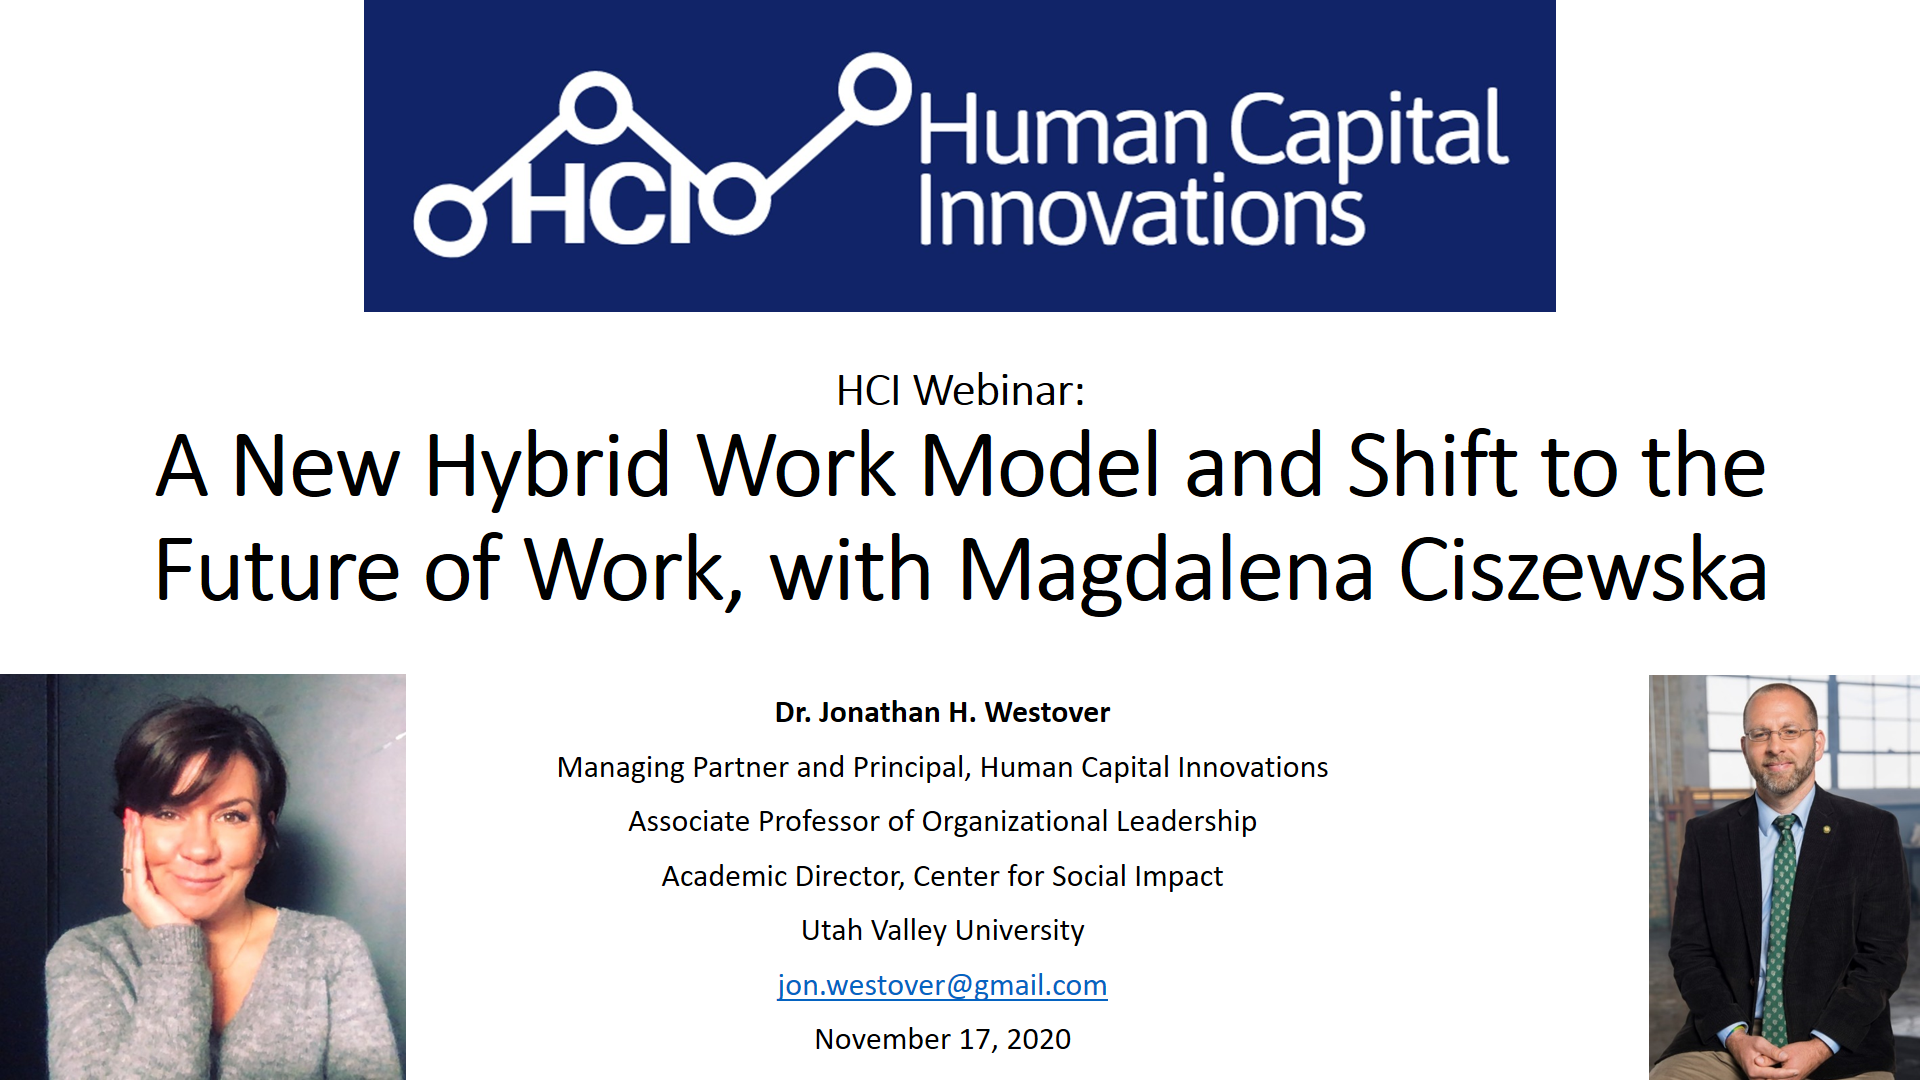 A New Hybrid Work Model and Shift to the Future of Work